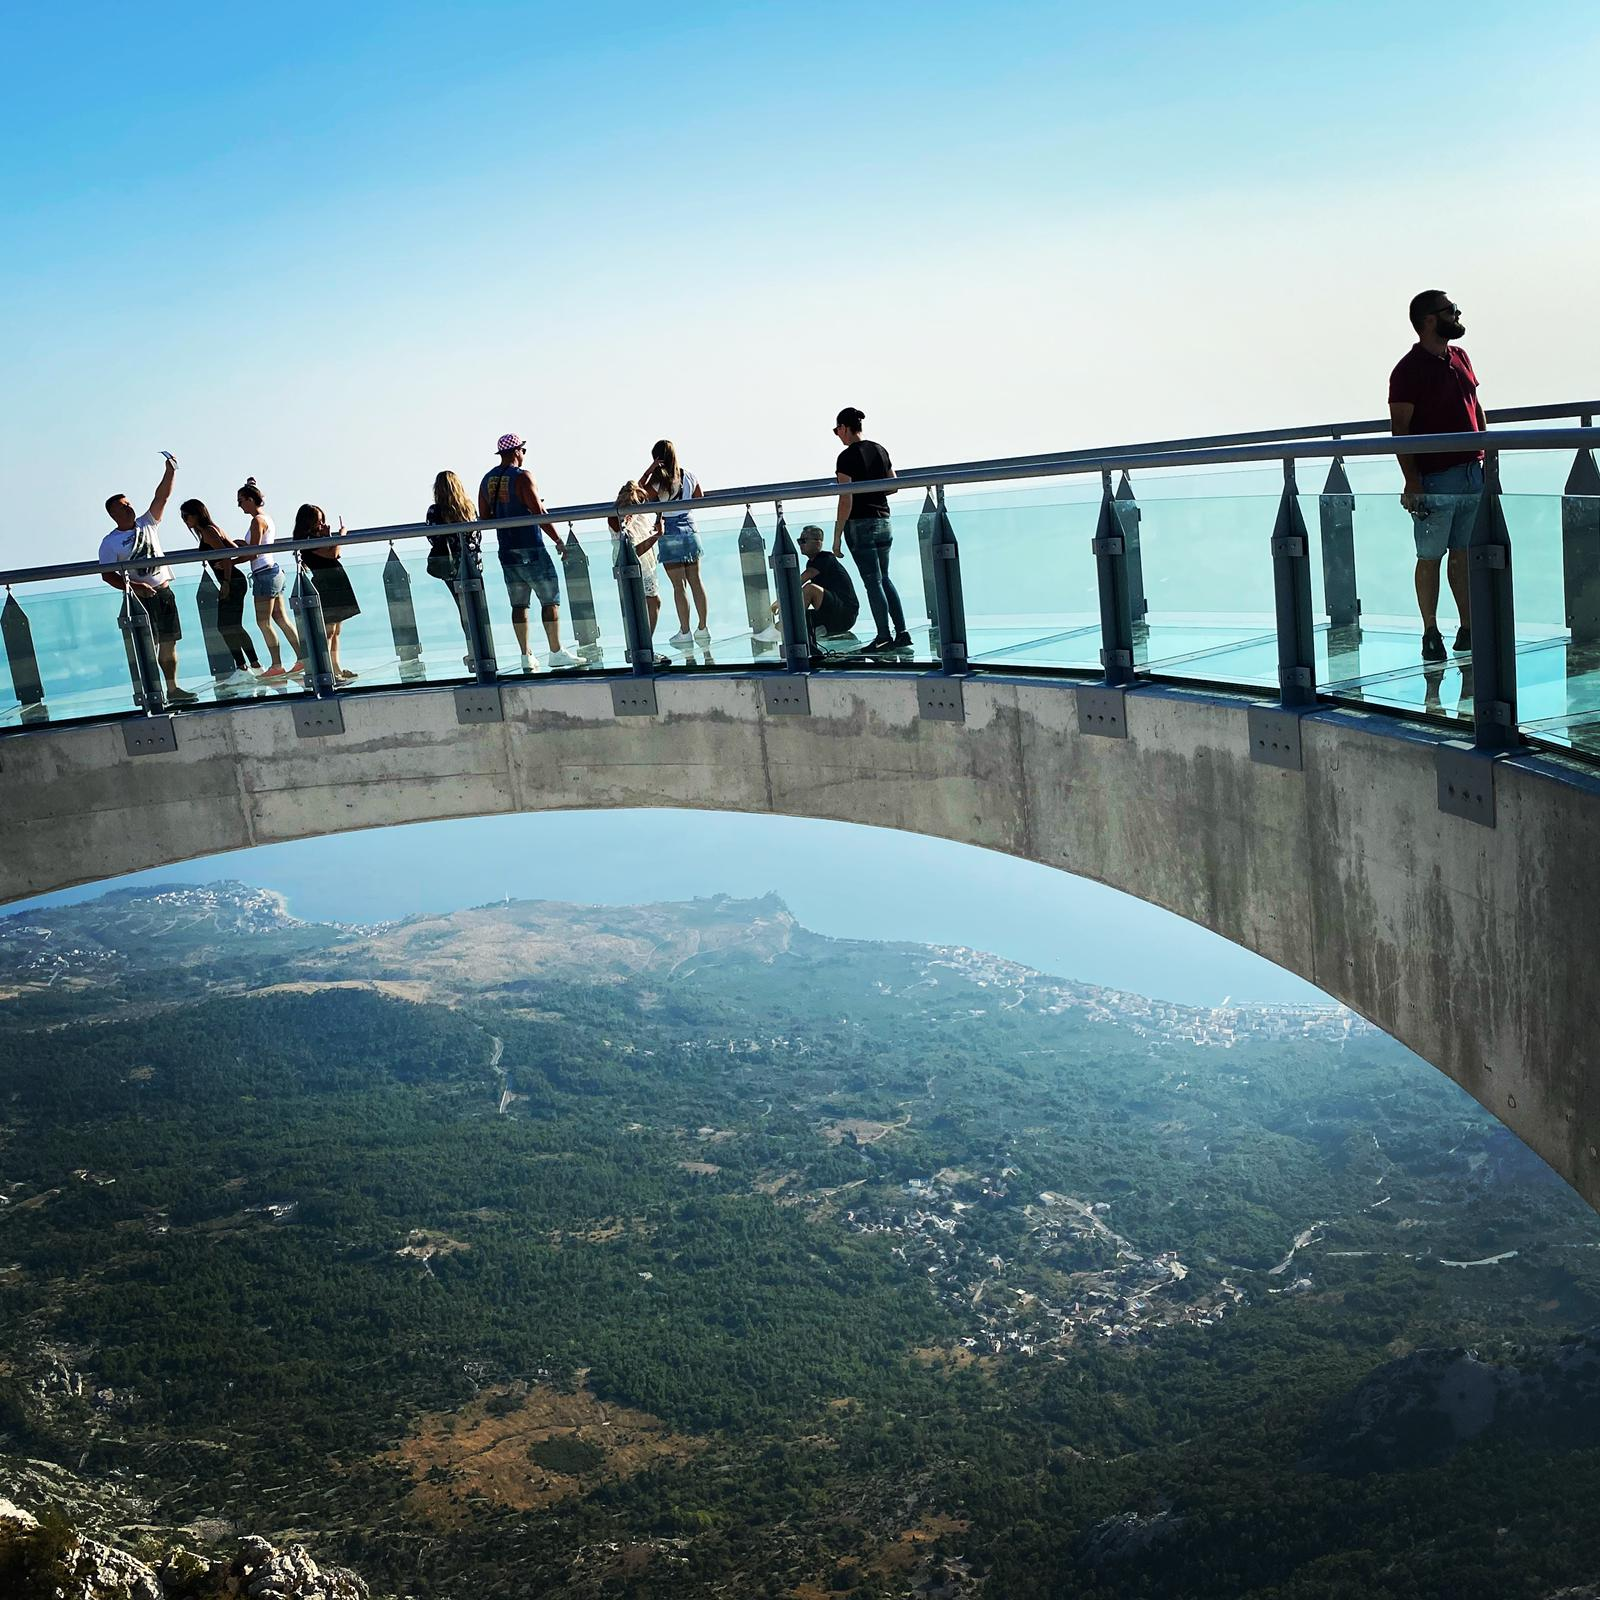 People enjoying the view from the Skywalk